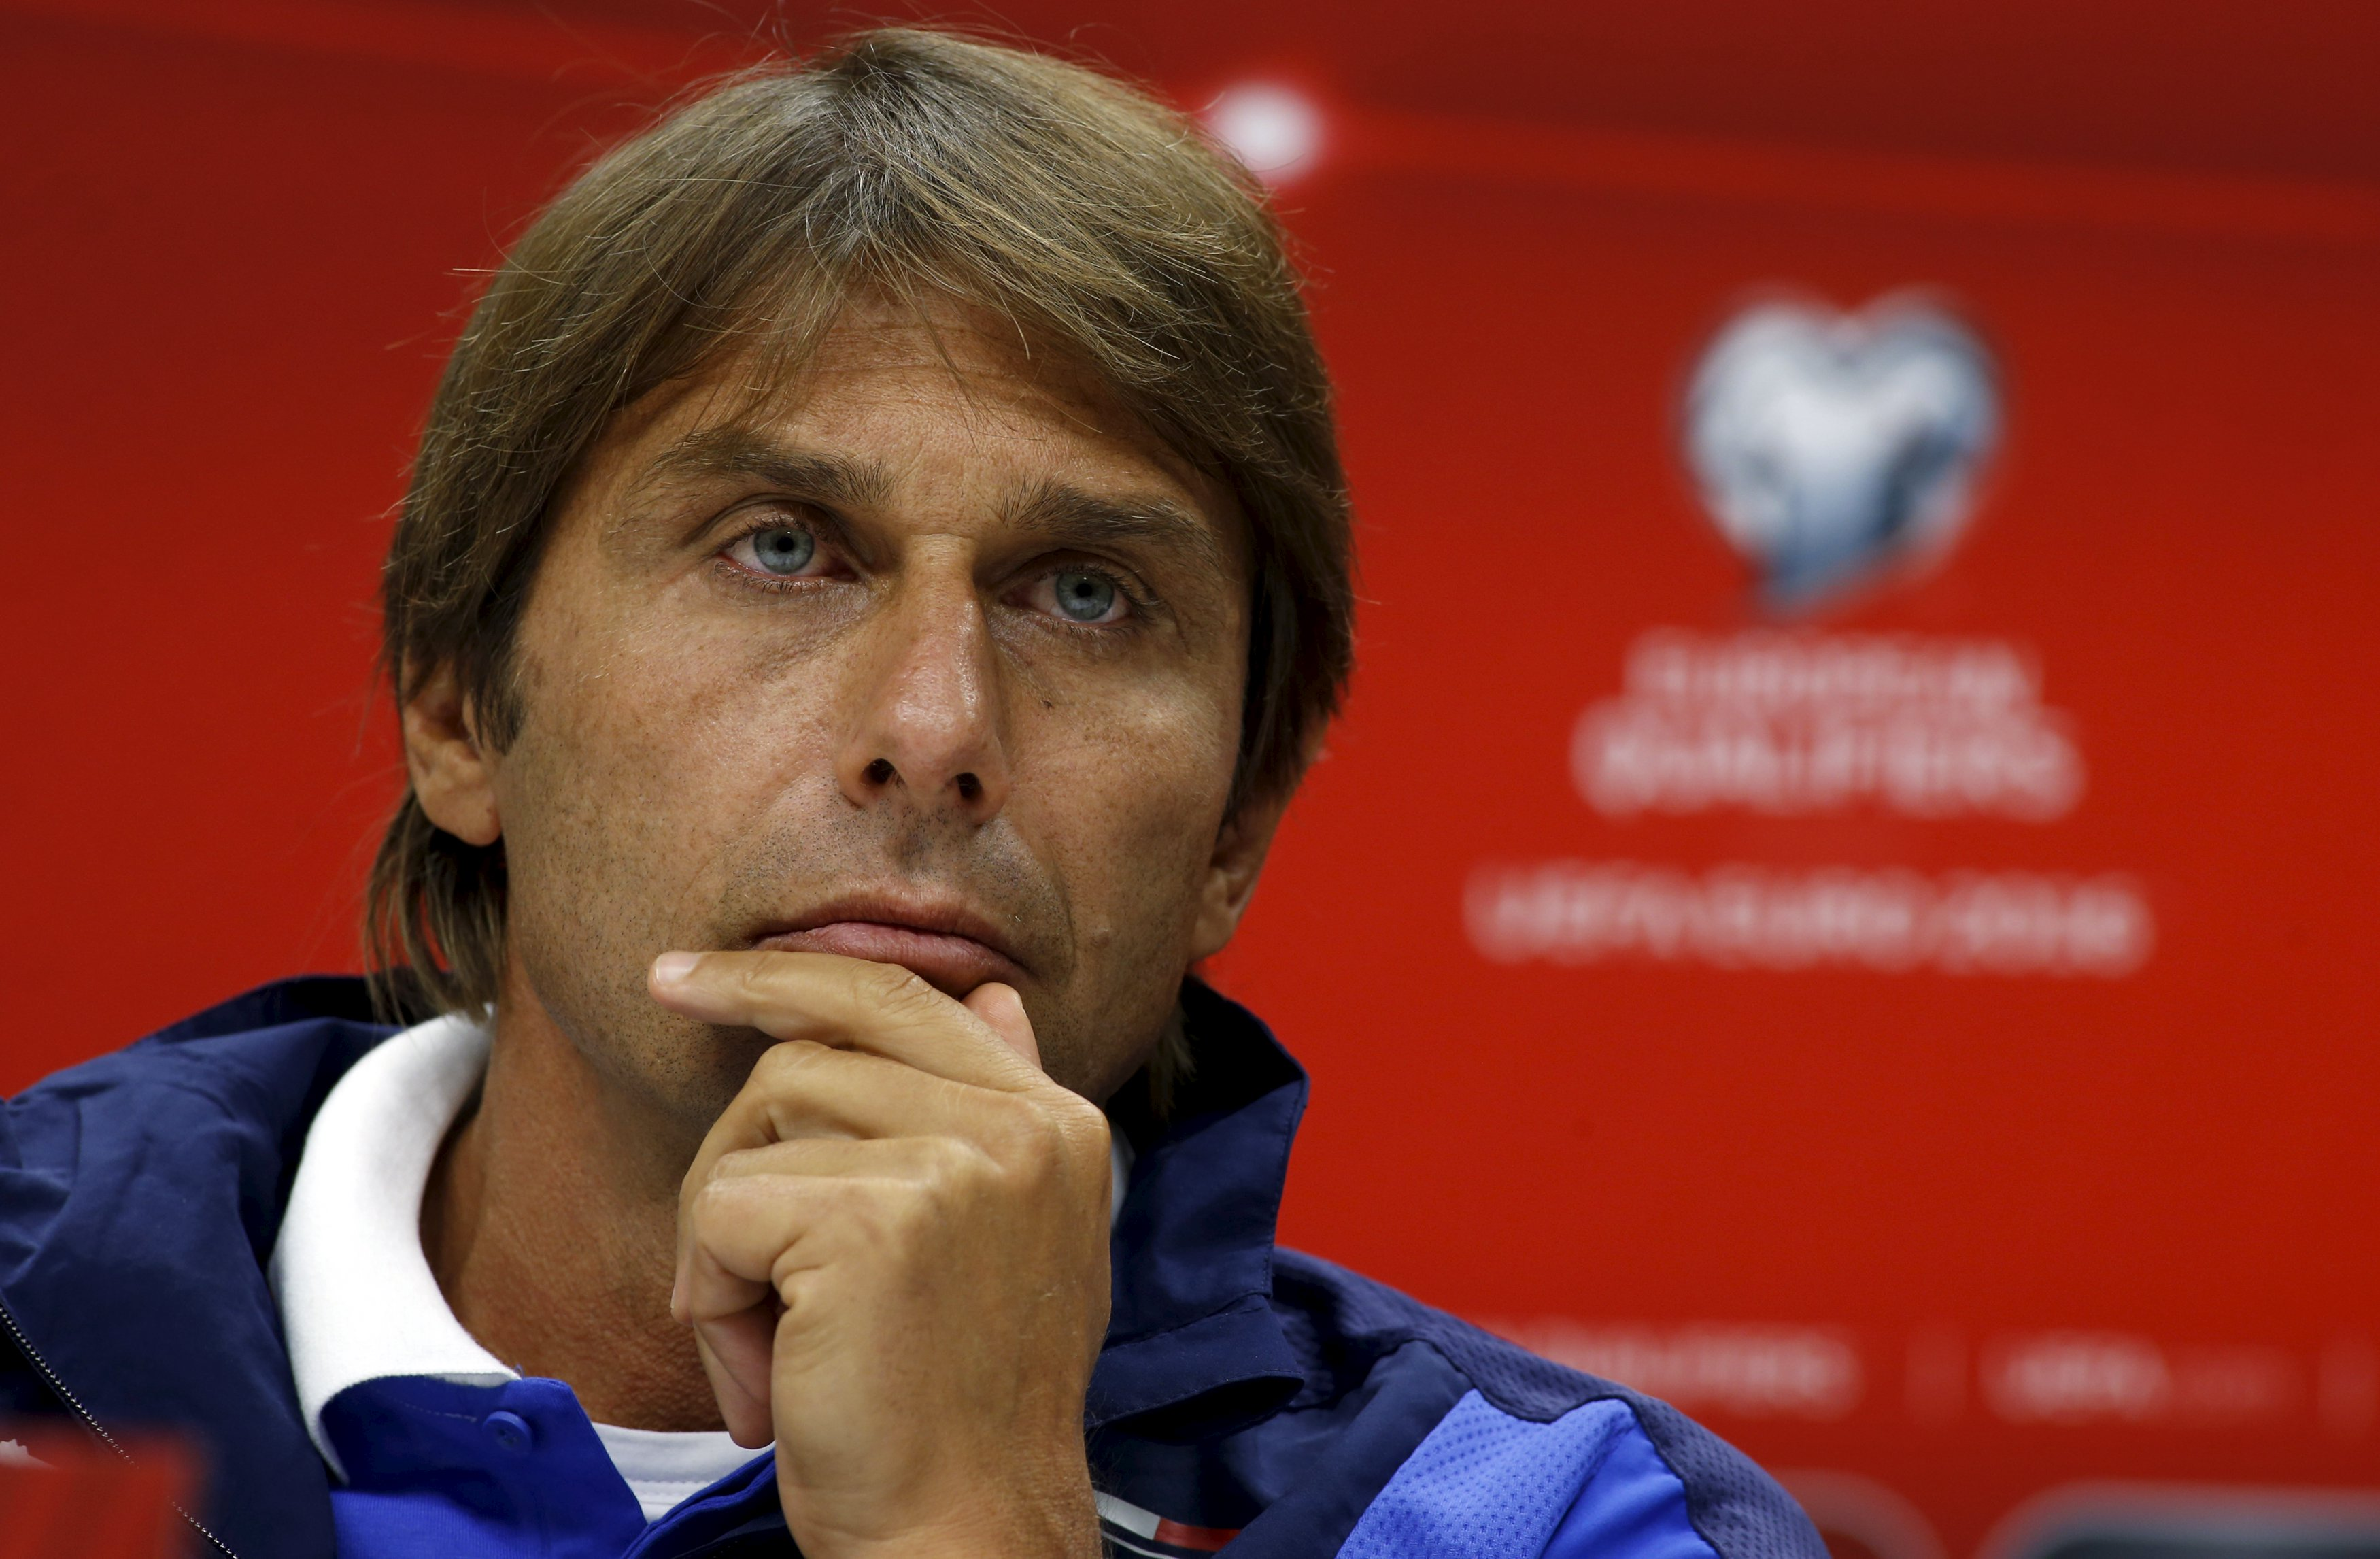 Italy's head coach Antonio Conte attends a news conference in Baku, Azerbaijan, October 9, 2015. Italy will play a Euro 2016 qualification match against Azerbaijan on Saturday. REUTERS/David Mdzinarishvili